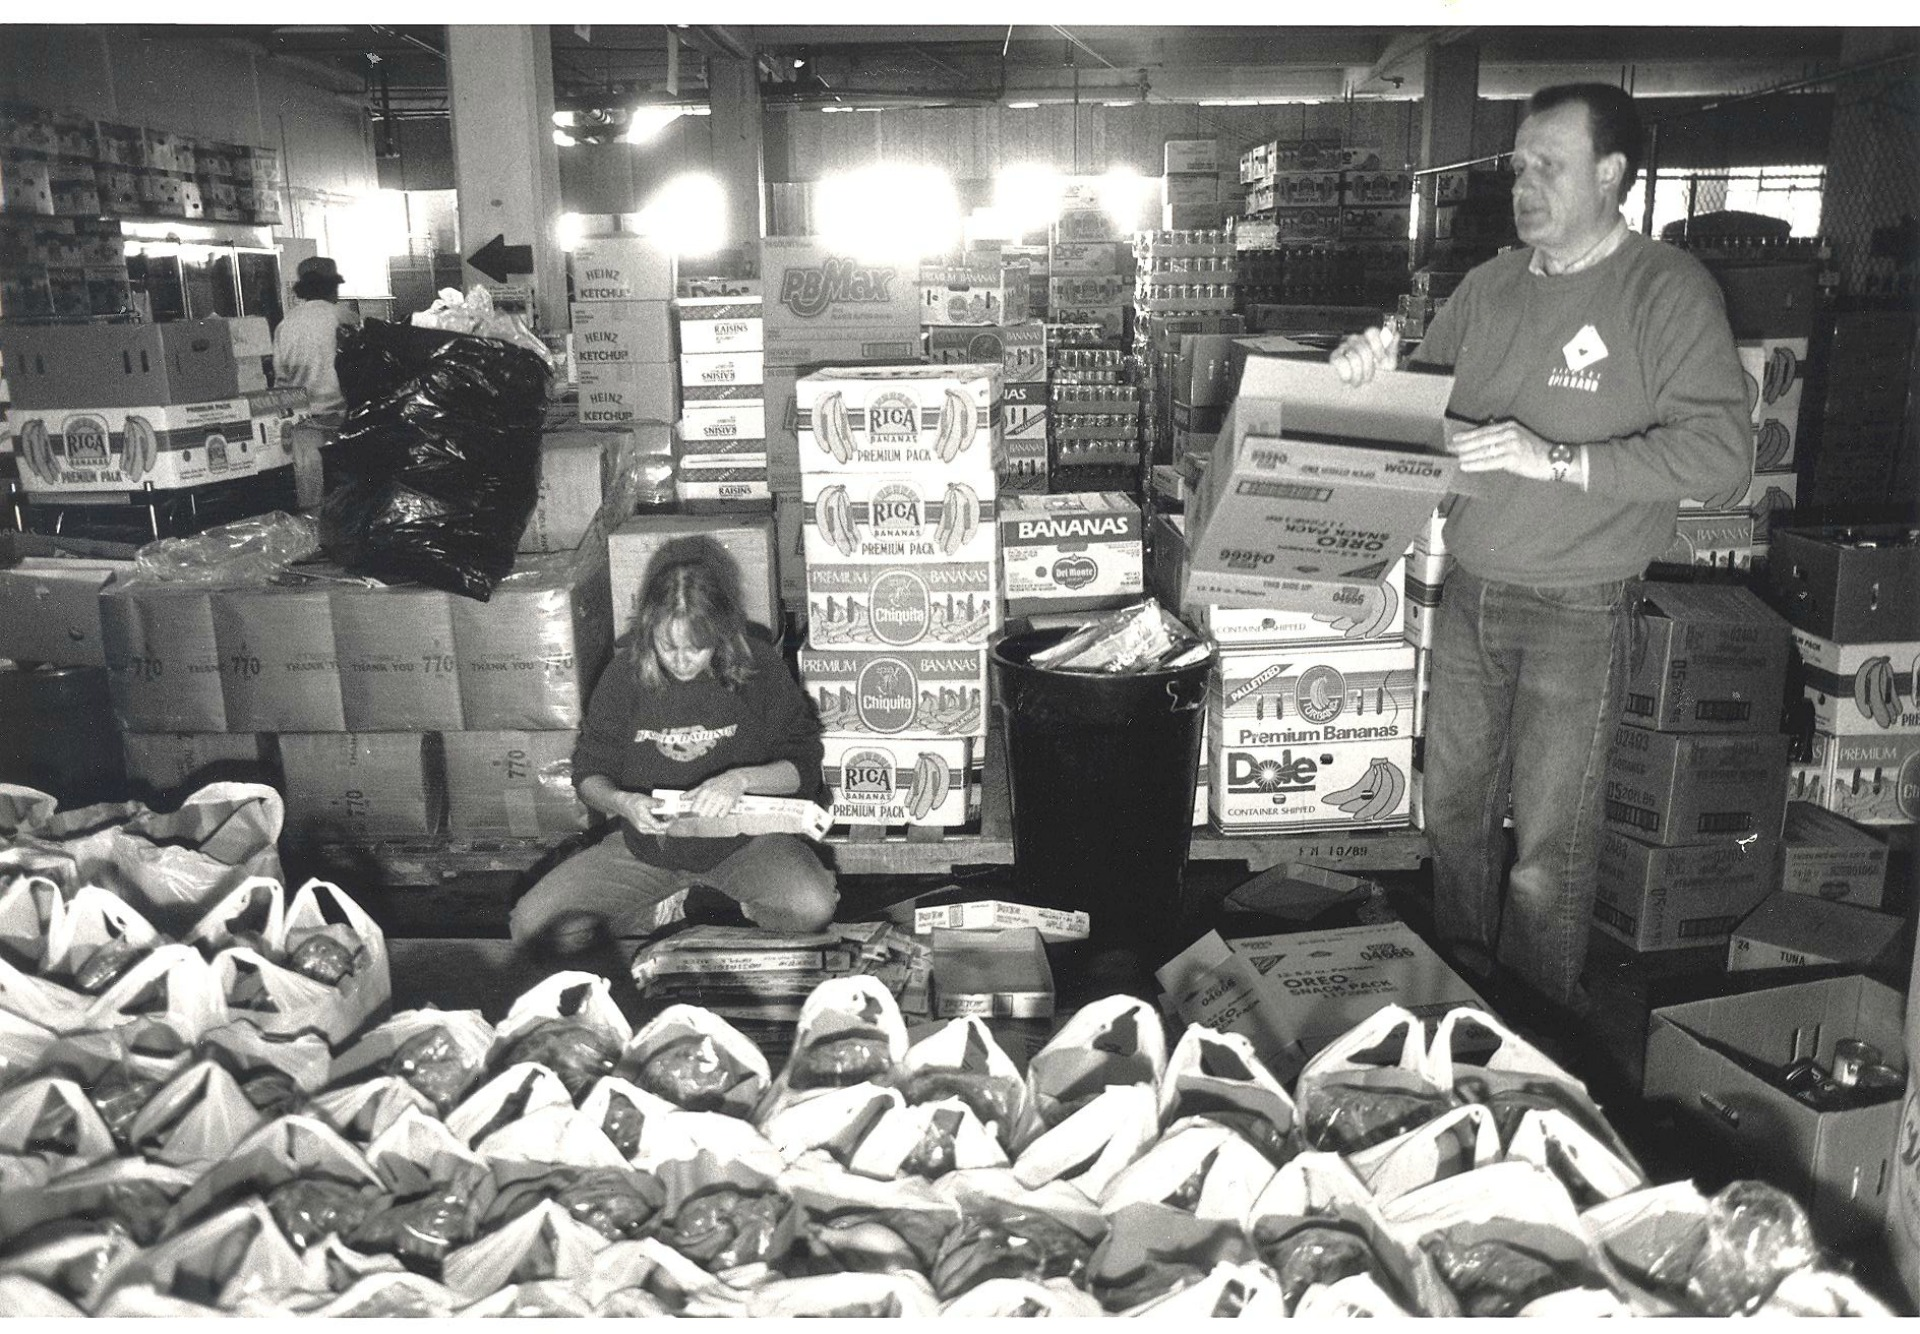 Volunteers bag groceries in the early days.